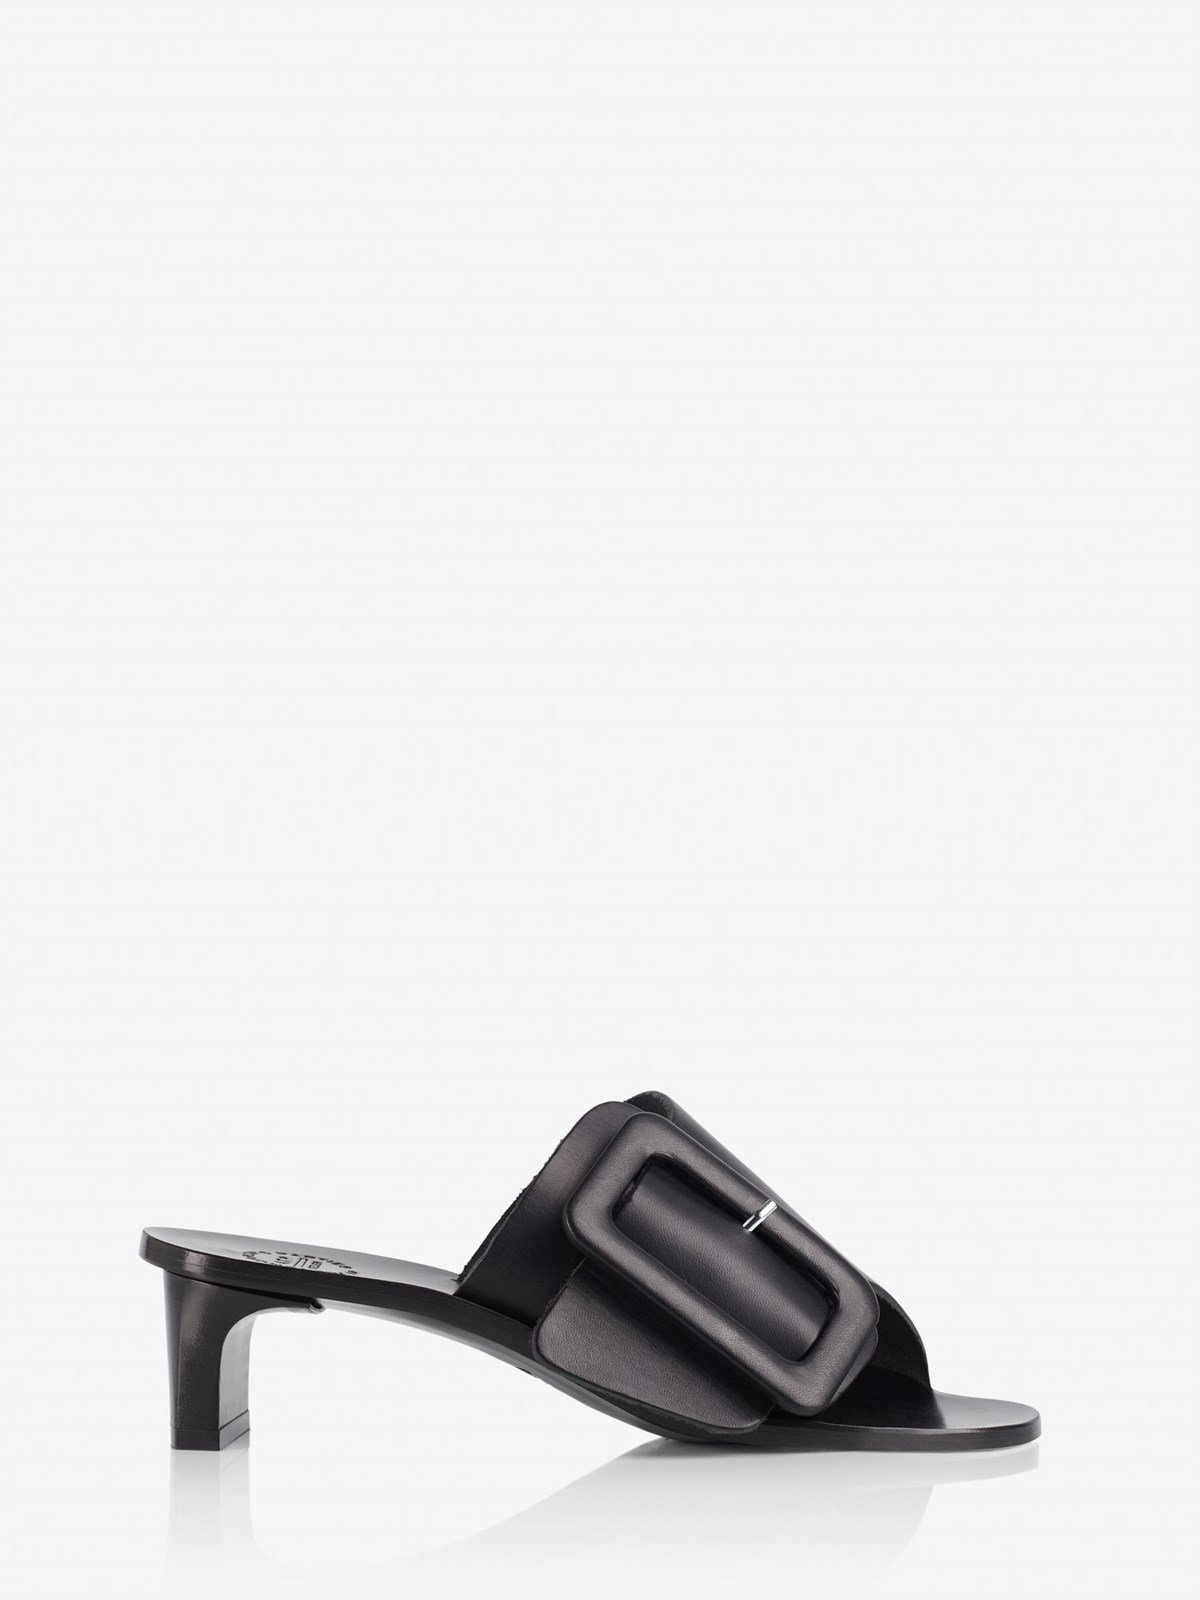 Cacao Black Heeled sandals